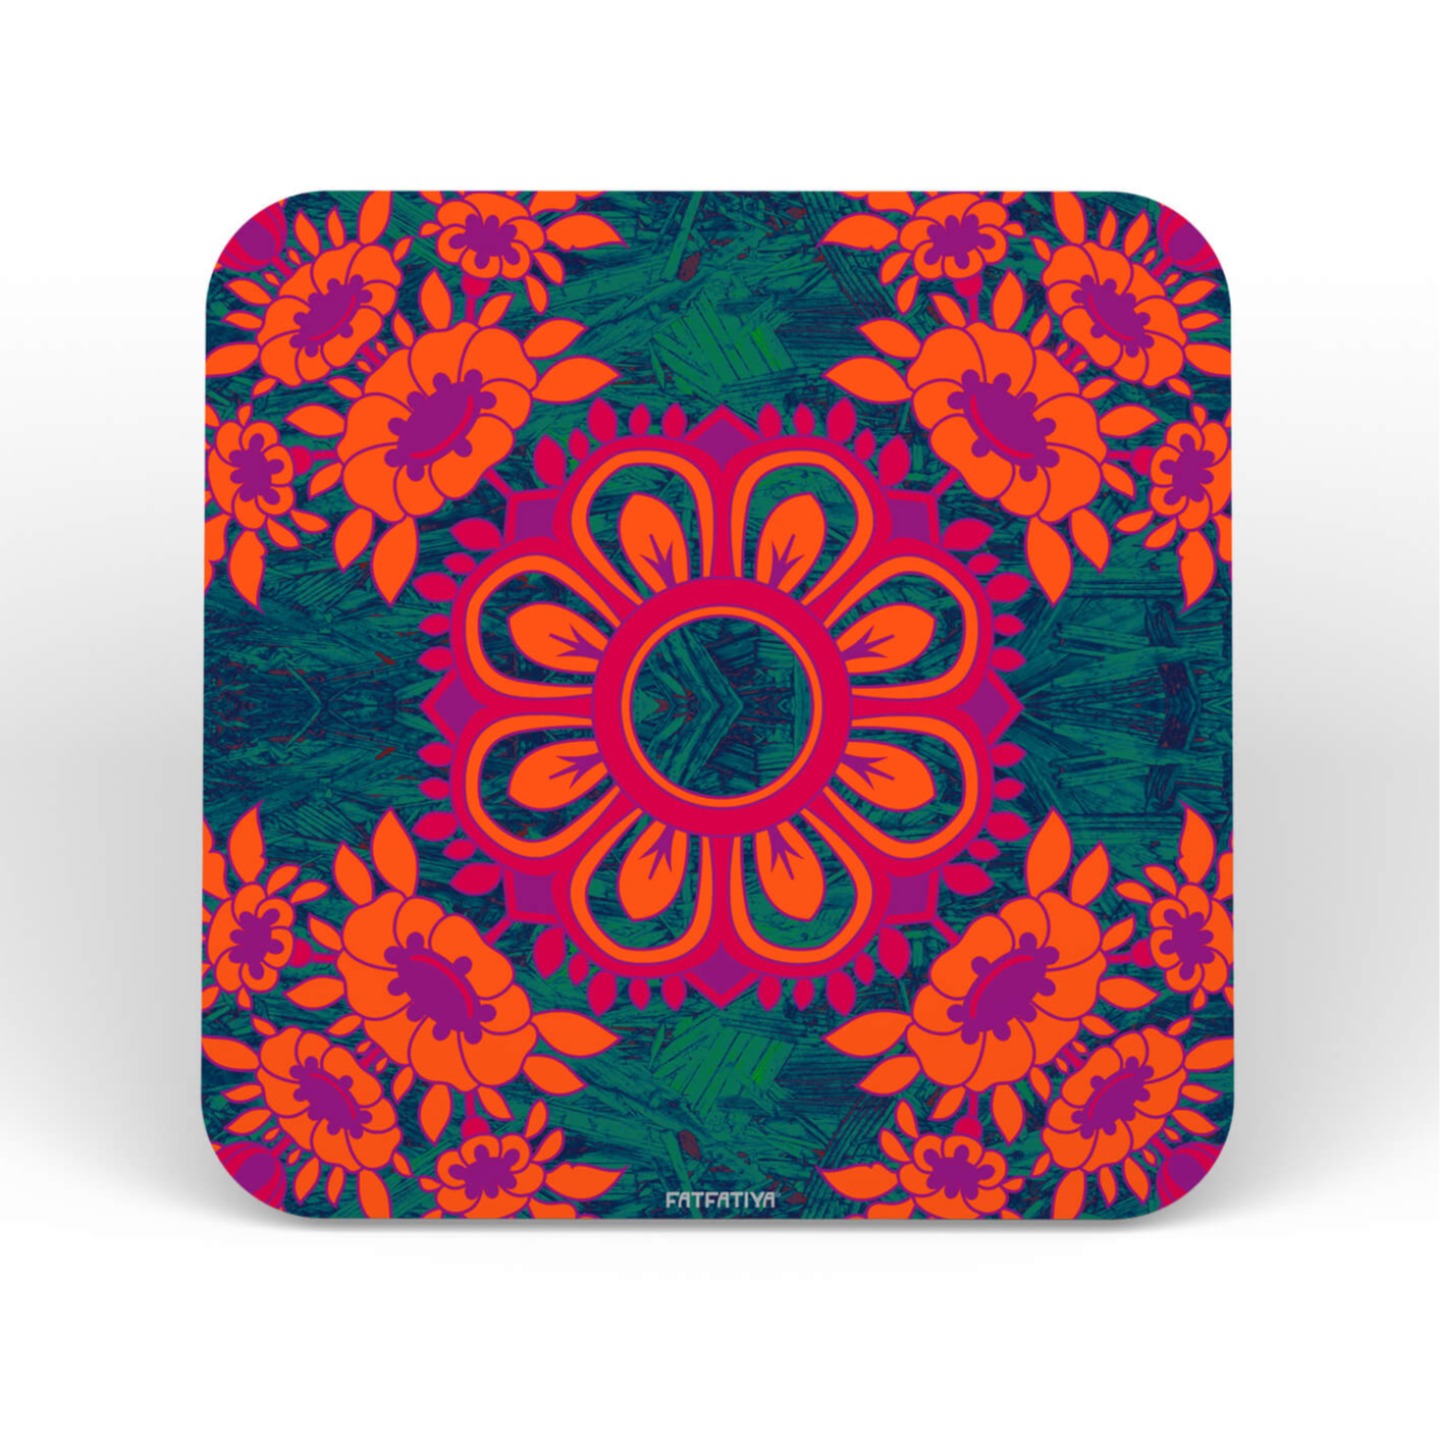 Magnificent Flower Motif Set of 6 Printed Coasters